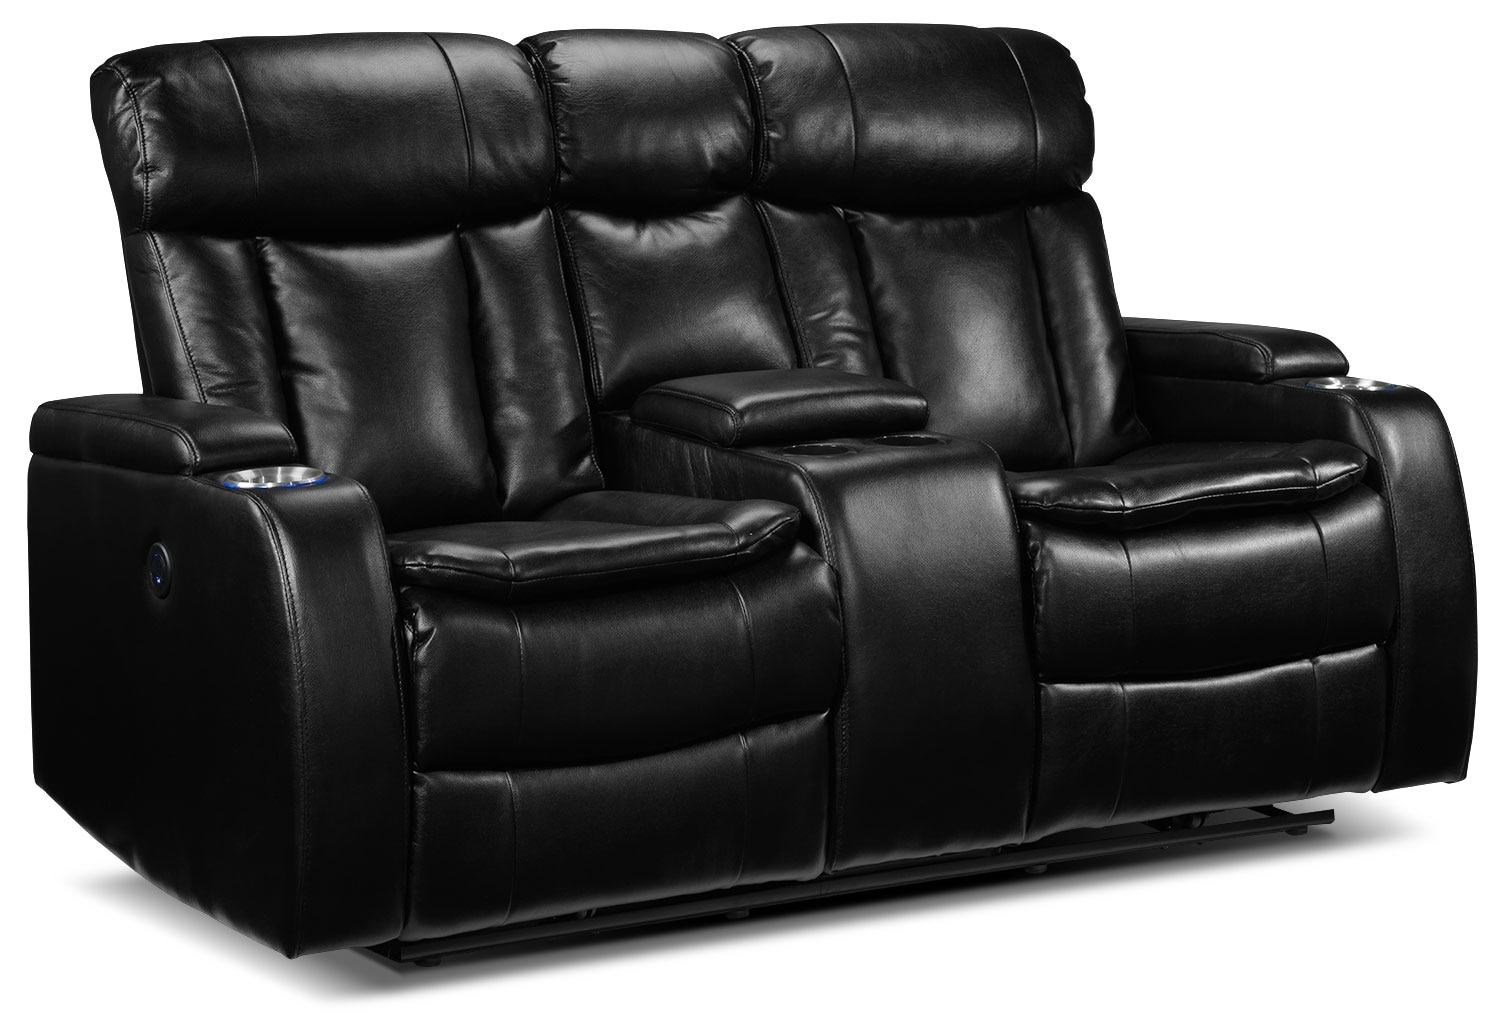 Executive Power Reclining Loveseat w/ Console